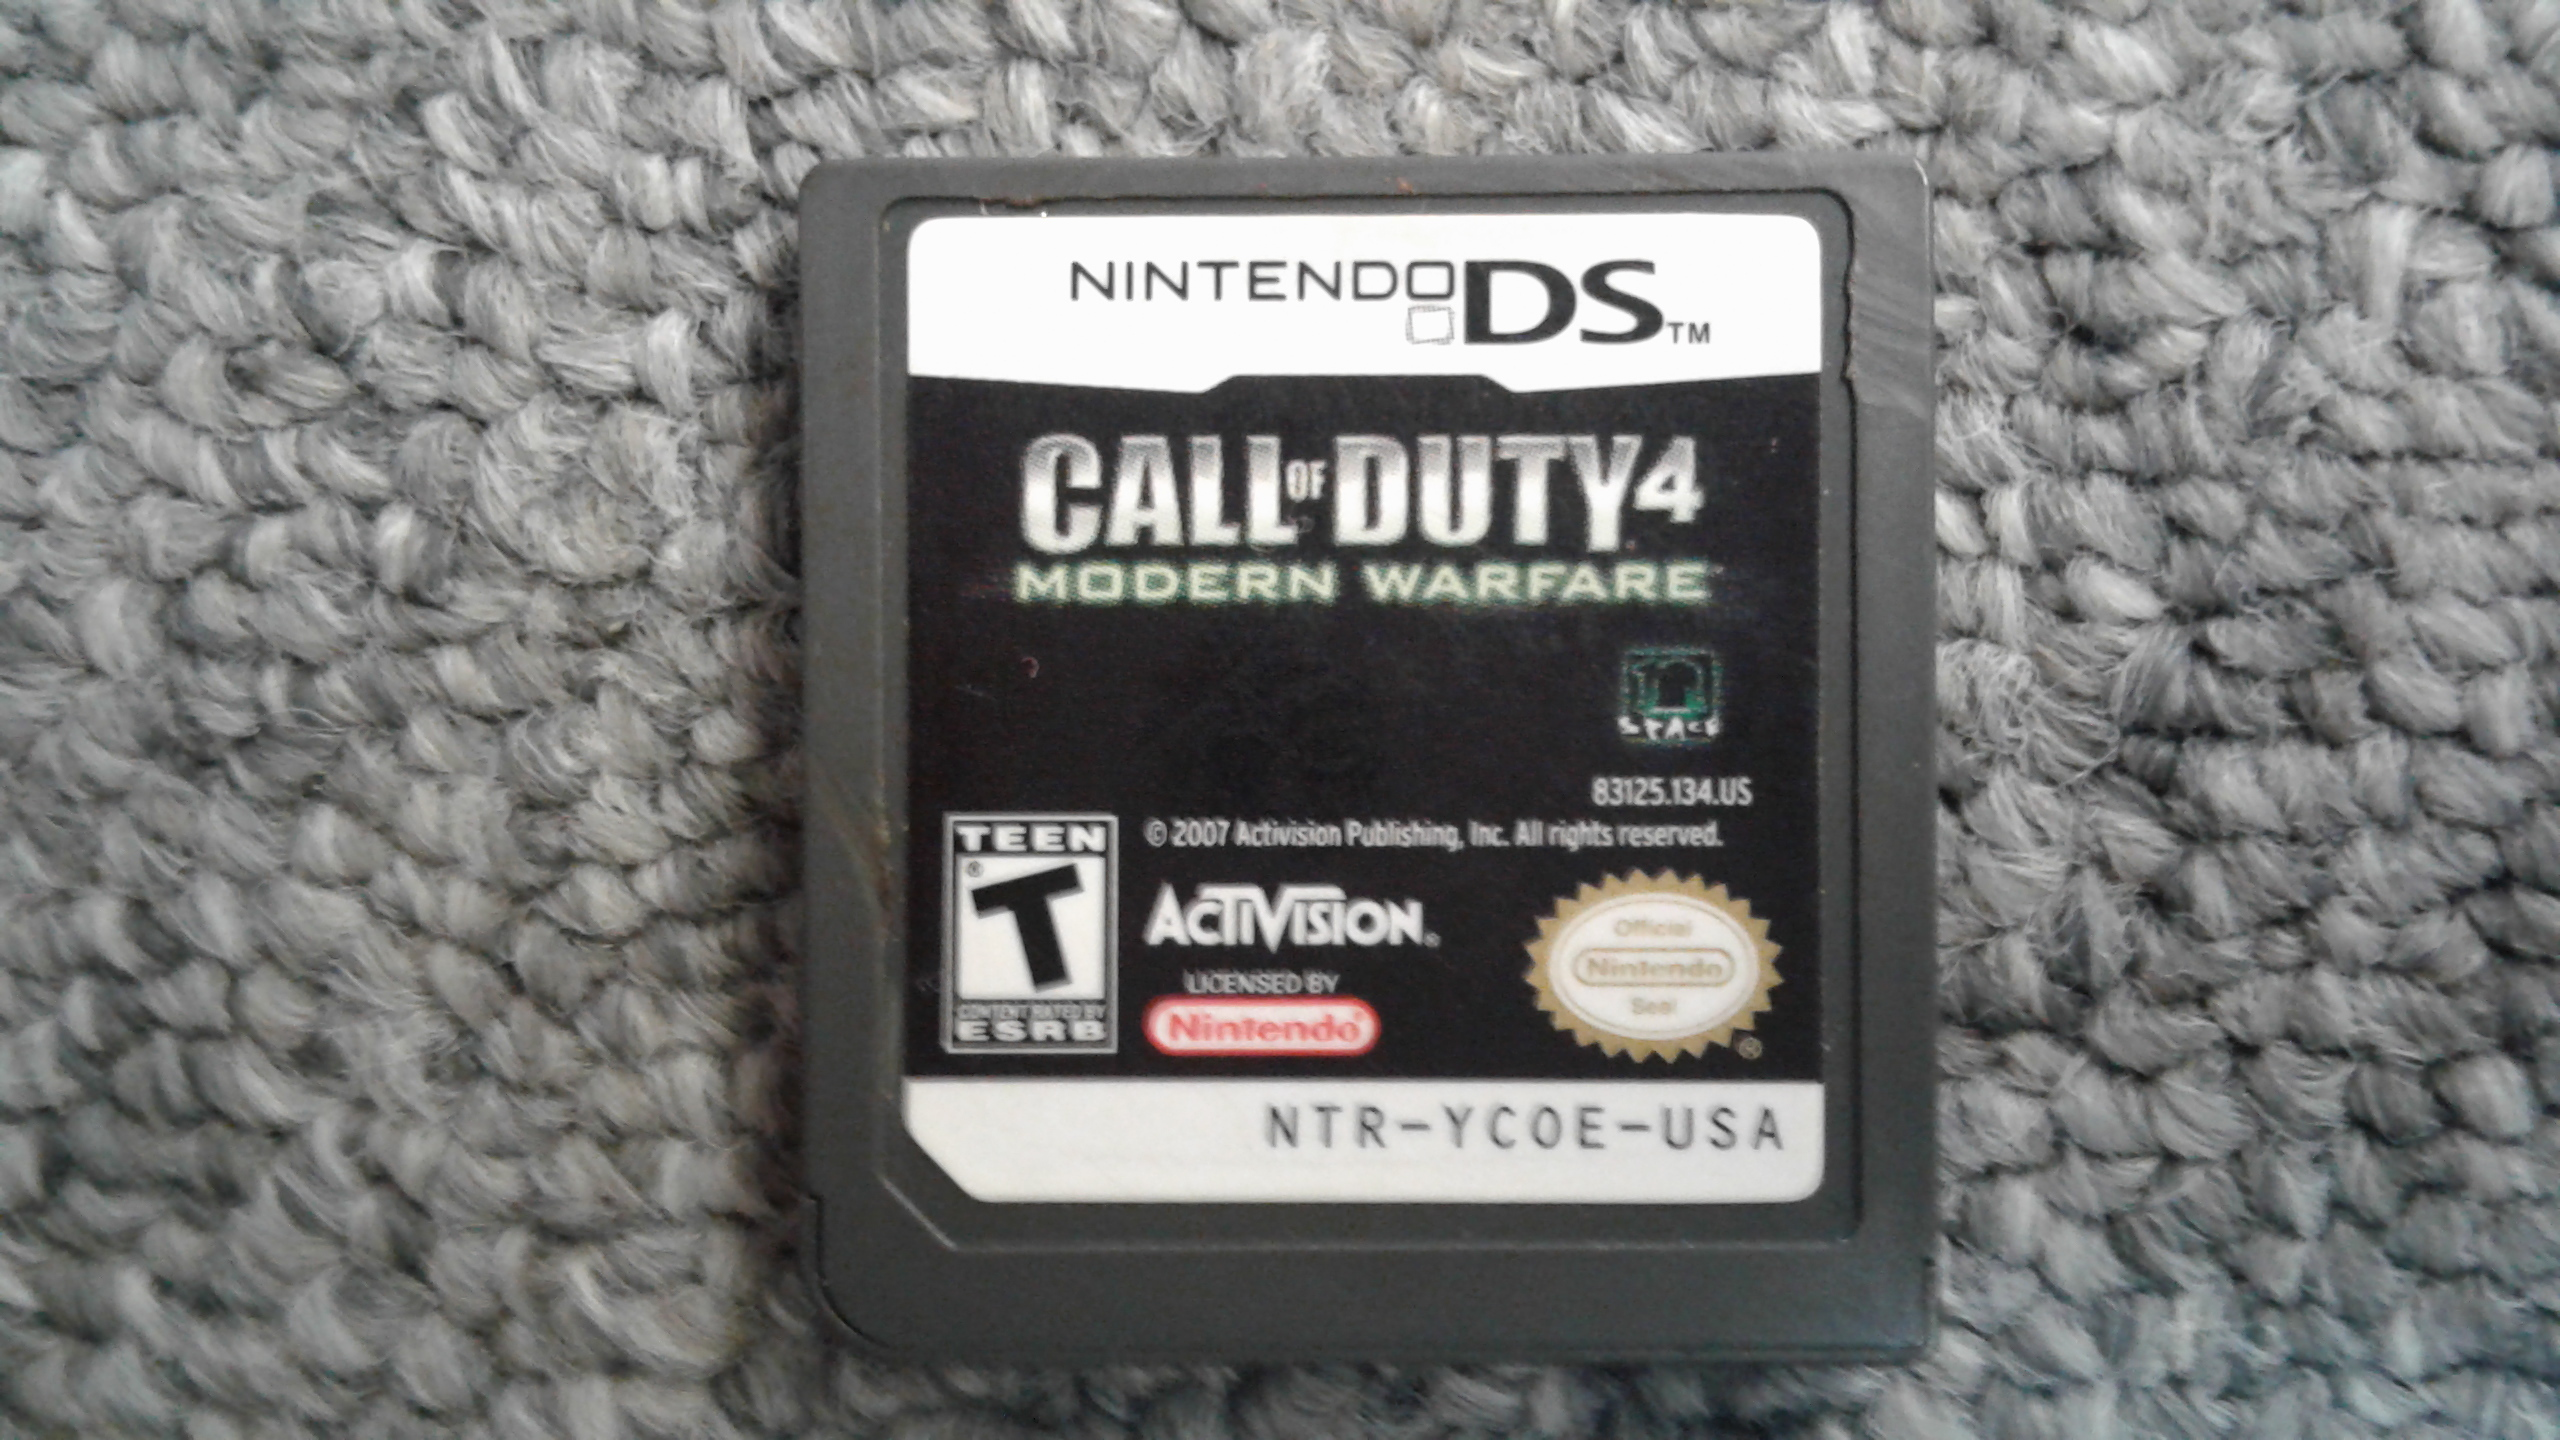 Call of Duty 4 Modern Warfare, Nintendo DS Game